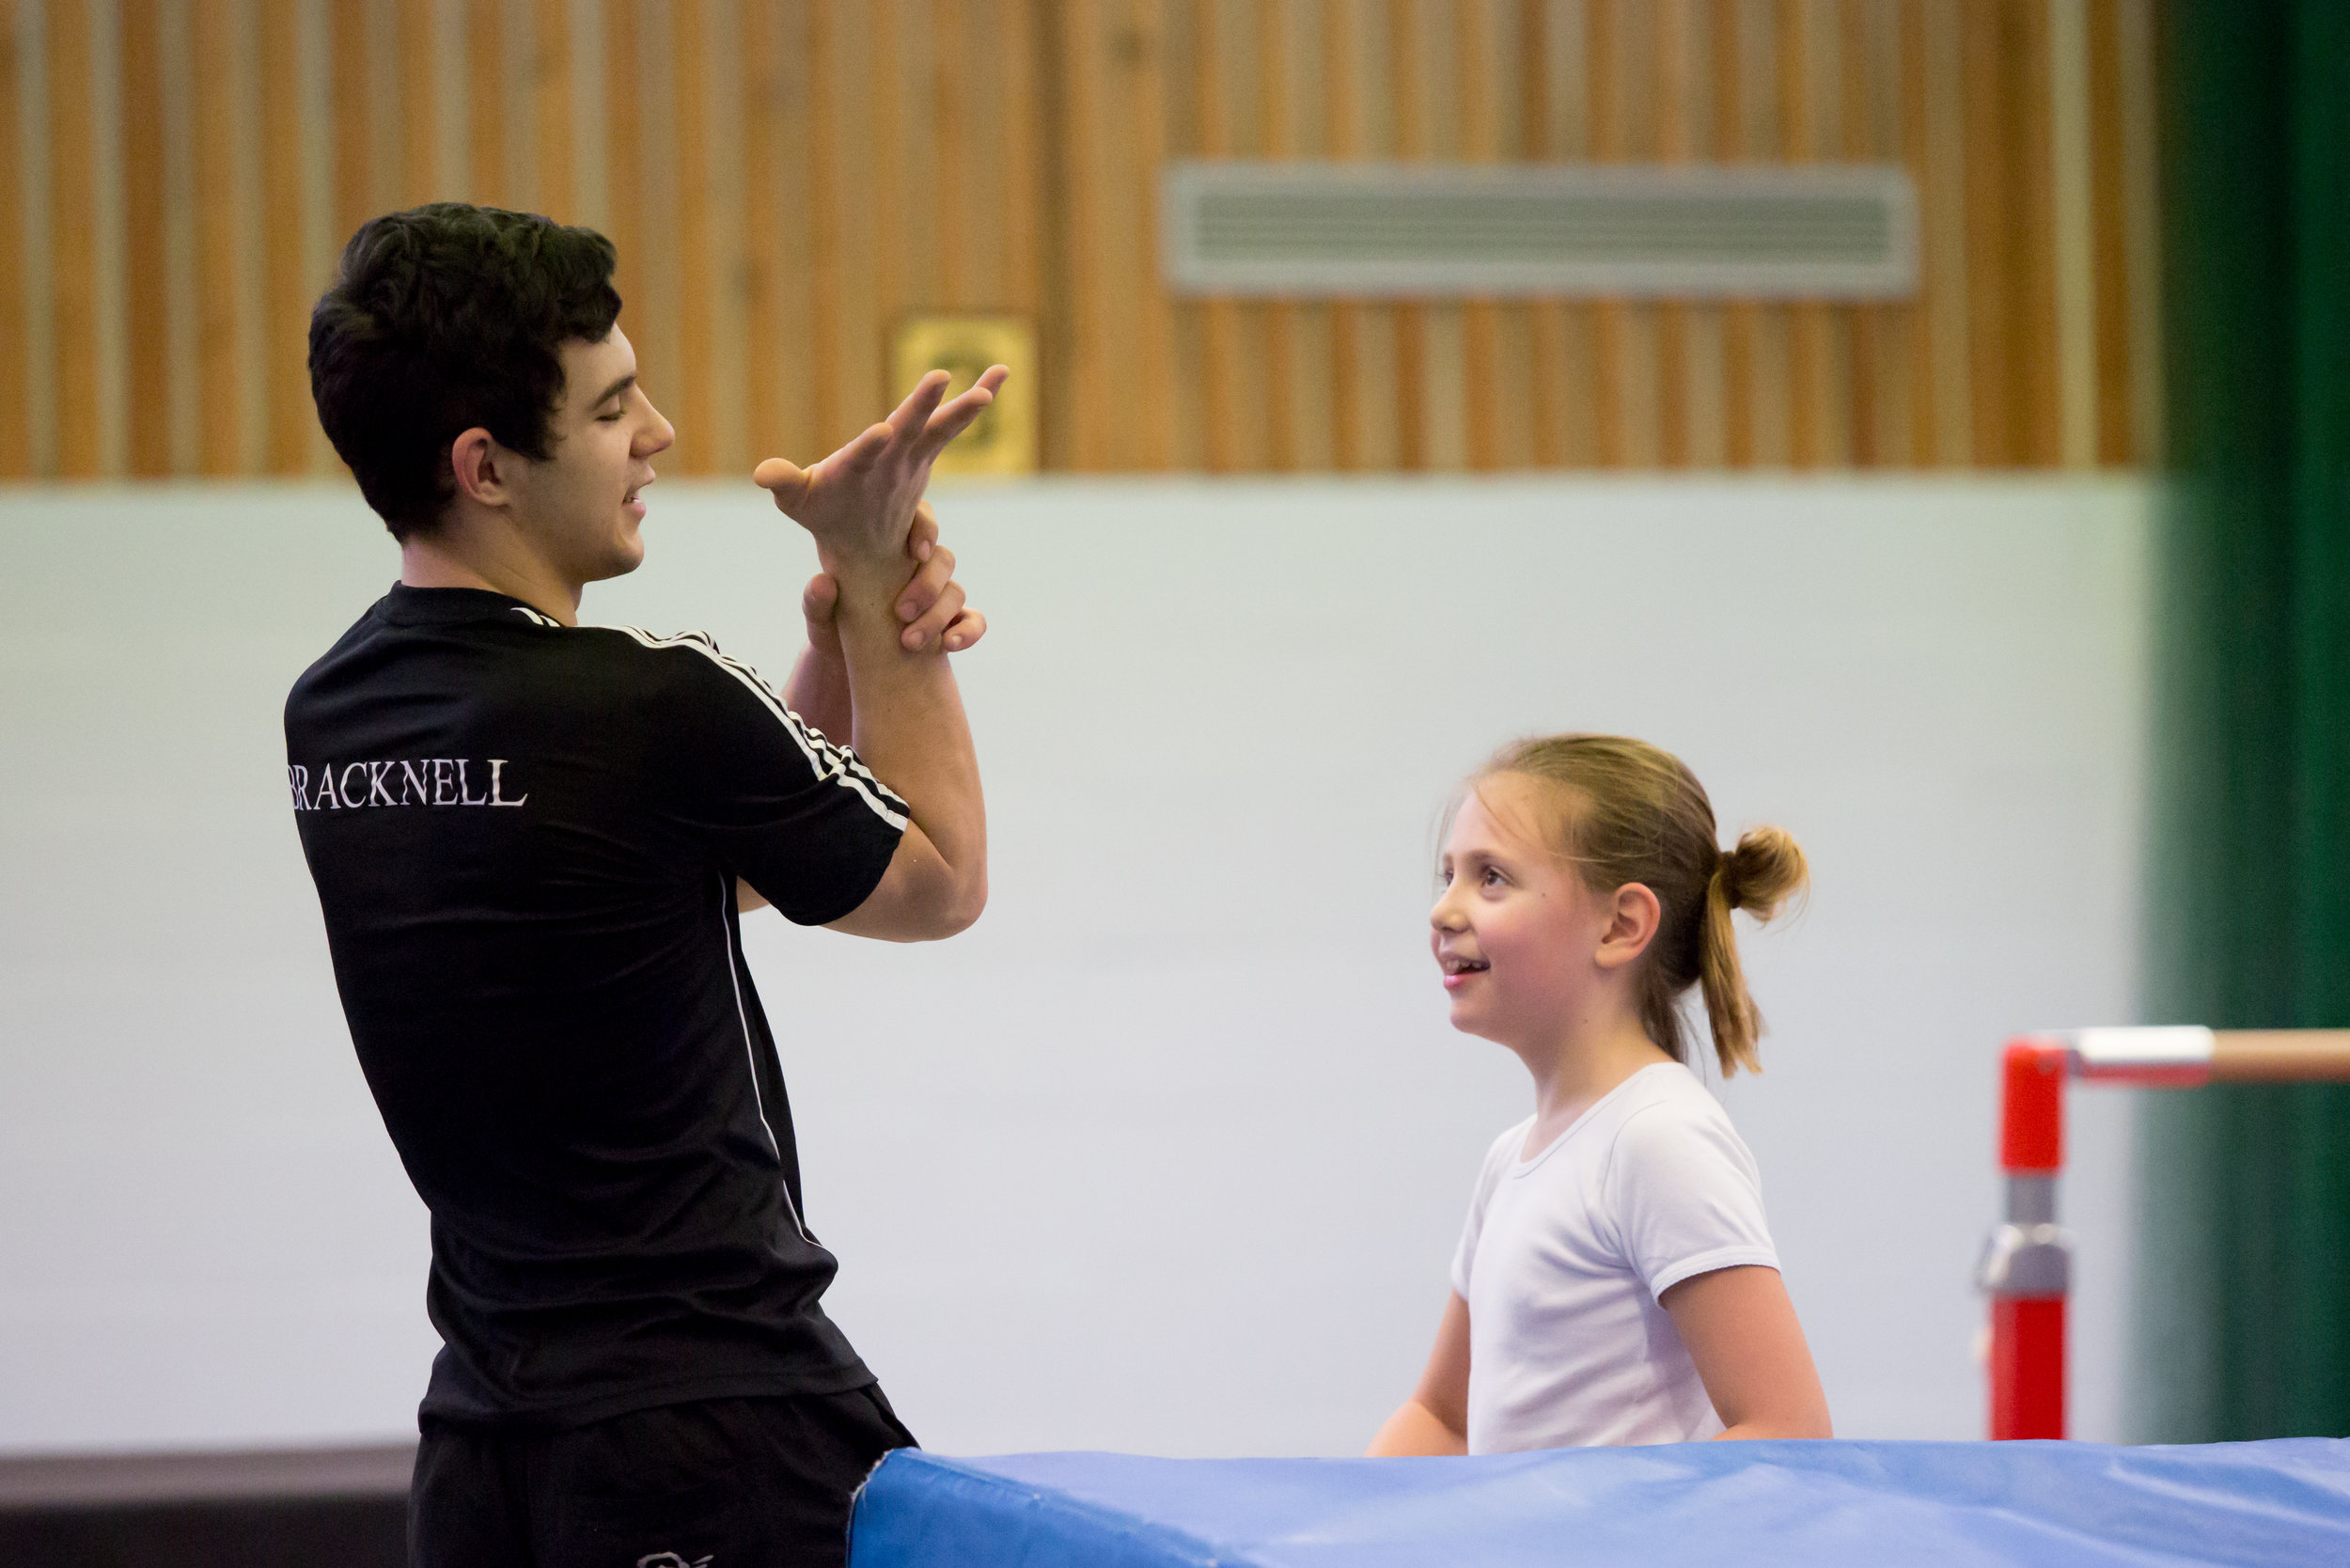 Intermediate Gymnastics - Intermediate Gymnastics classes are for those with basic gymnastic experience ready to start exploring more complex skills. The classes operate on the Bracknell Gymnastics Club badge scheme covering badge 6-8.